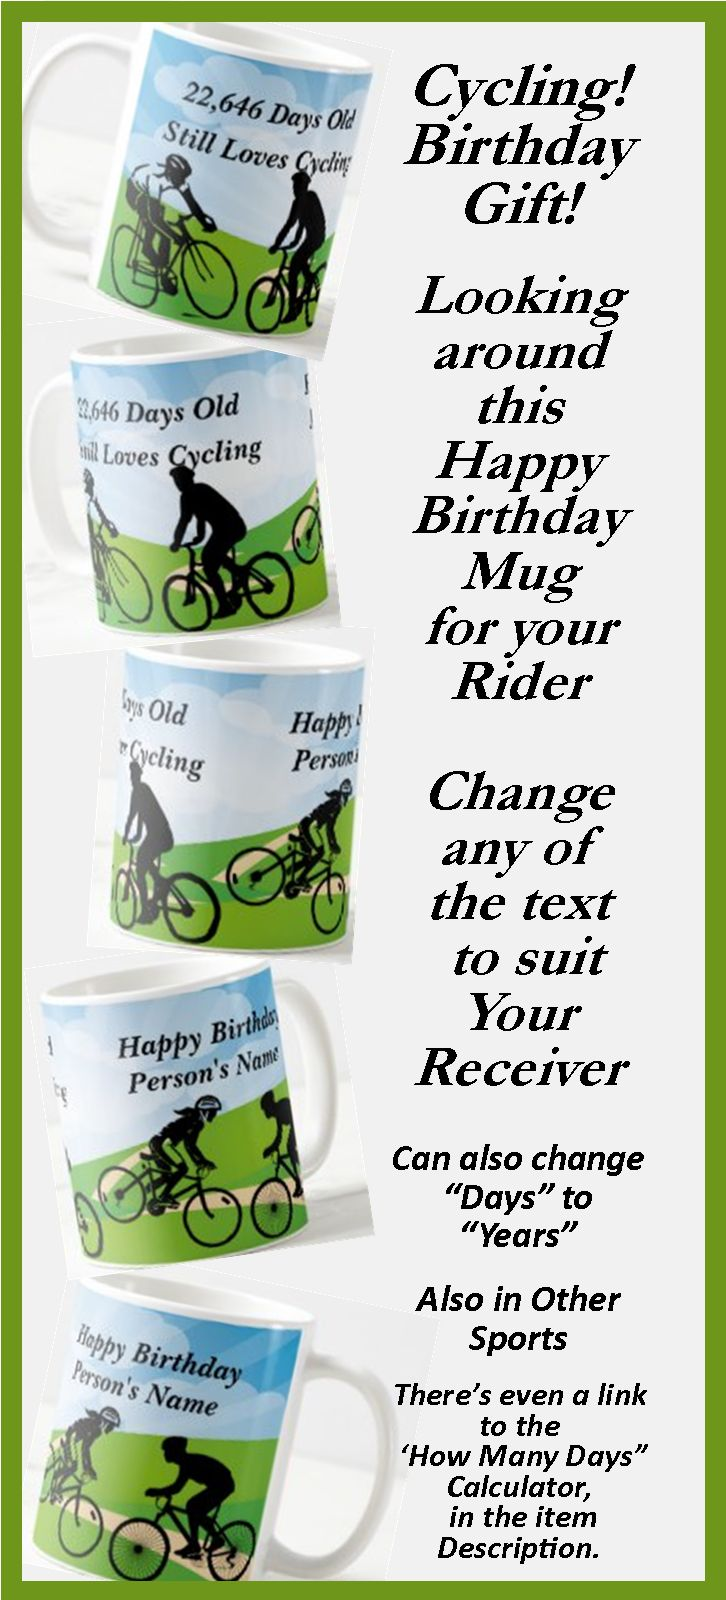 """Great Birthday Gift for the Cyclist. - - Change the Days or Years, - - - Change the Name to suit your Recipient. - - there's a """"How many Day"""" calculator link in the item description."""